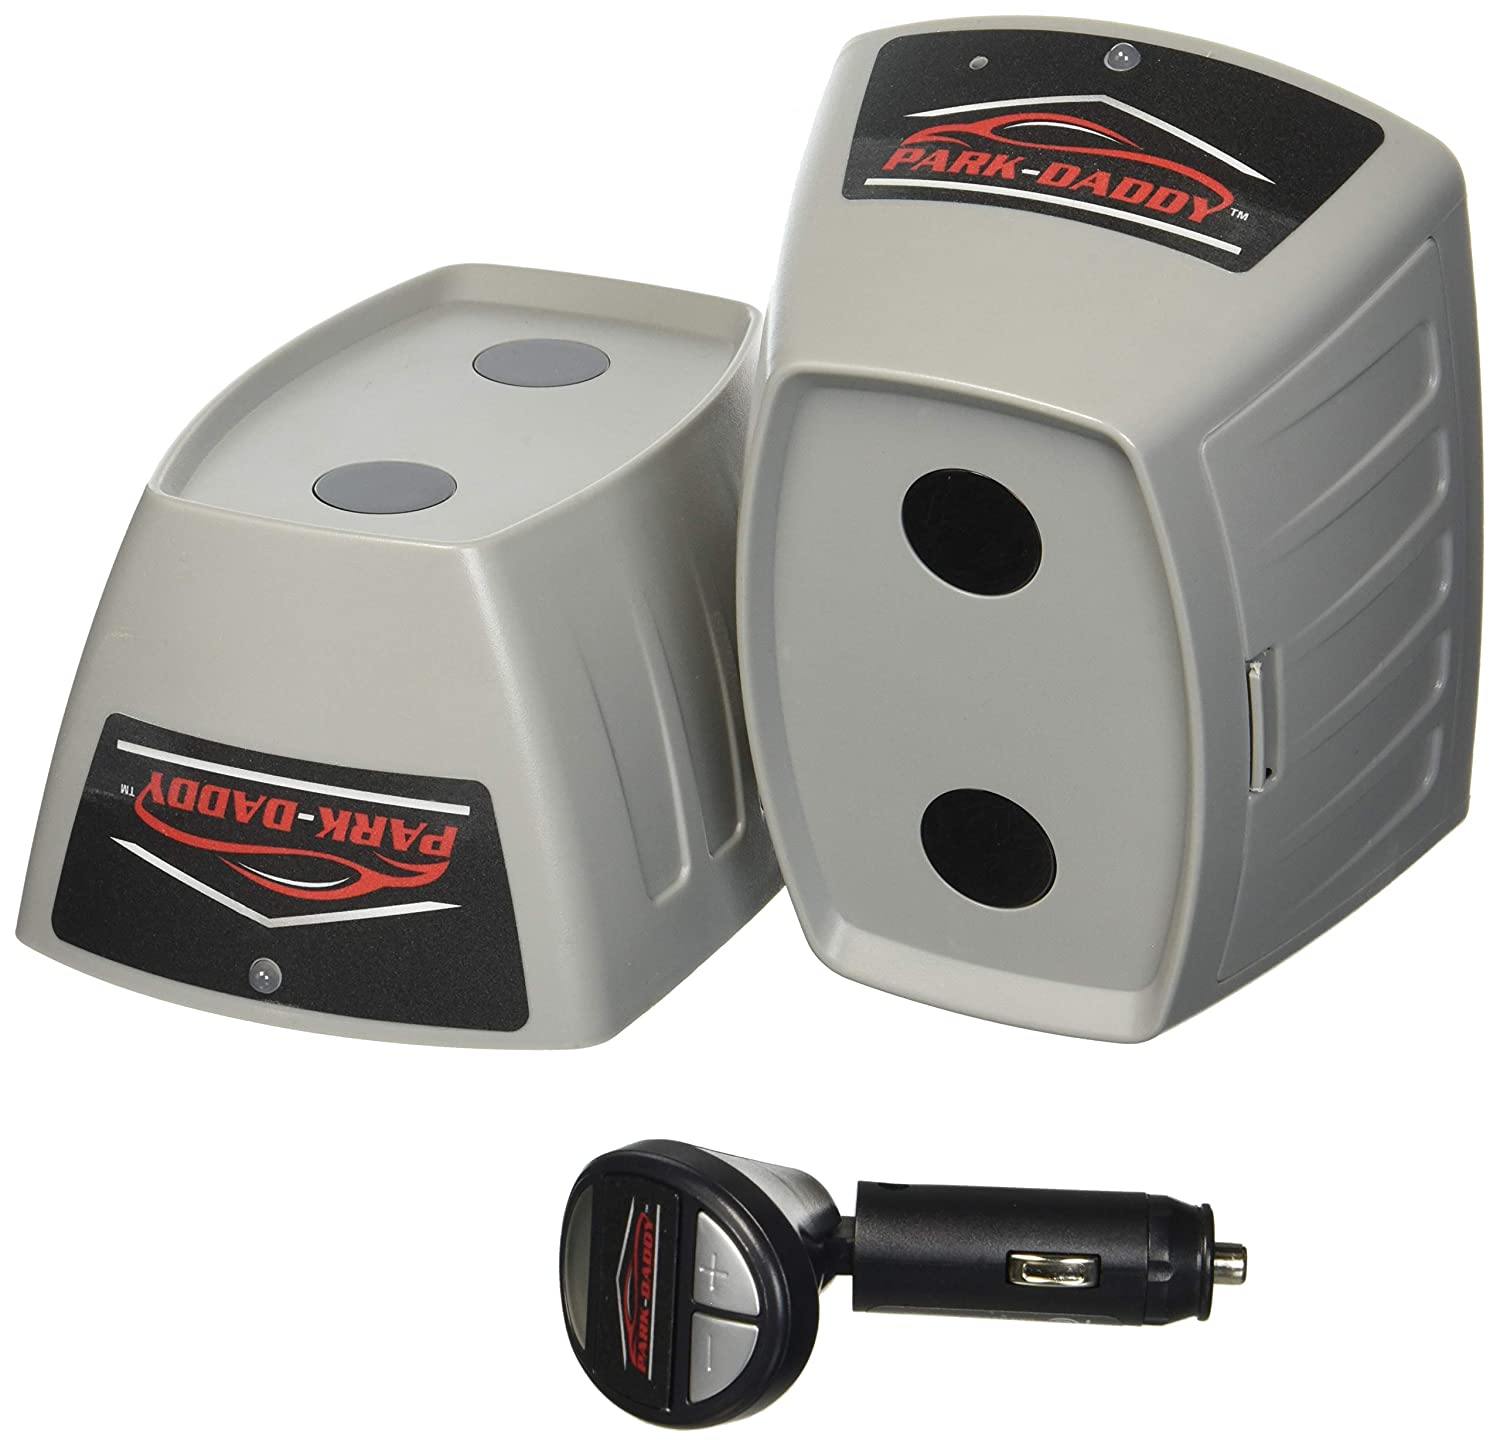 Park Daddy-Precision Garage Parking Aid System, Maximize The Area in Front of Your Vehicle. No Hard Wiring! No Harmful Lasers! Audiovox PDY50AA